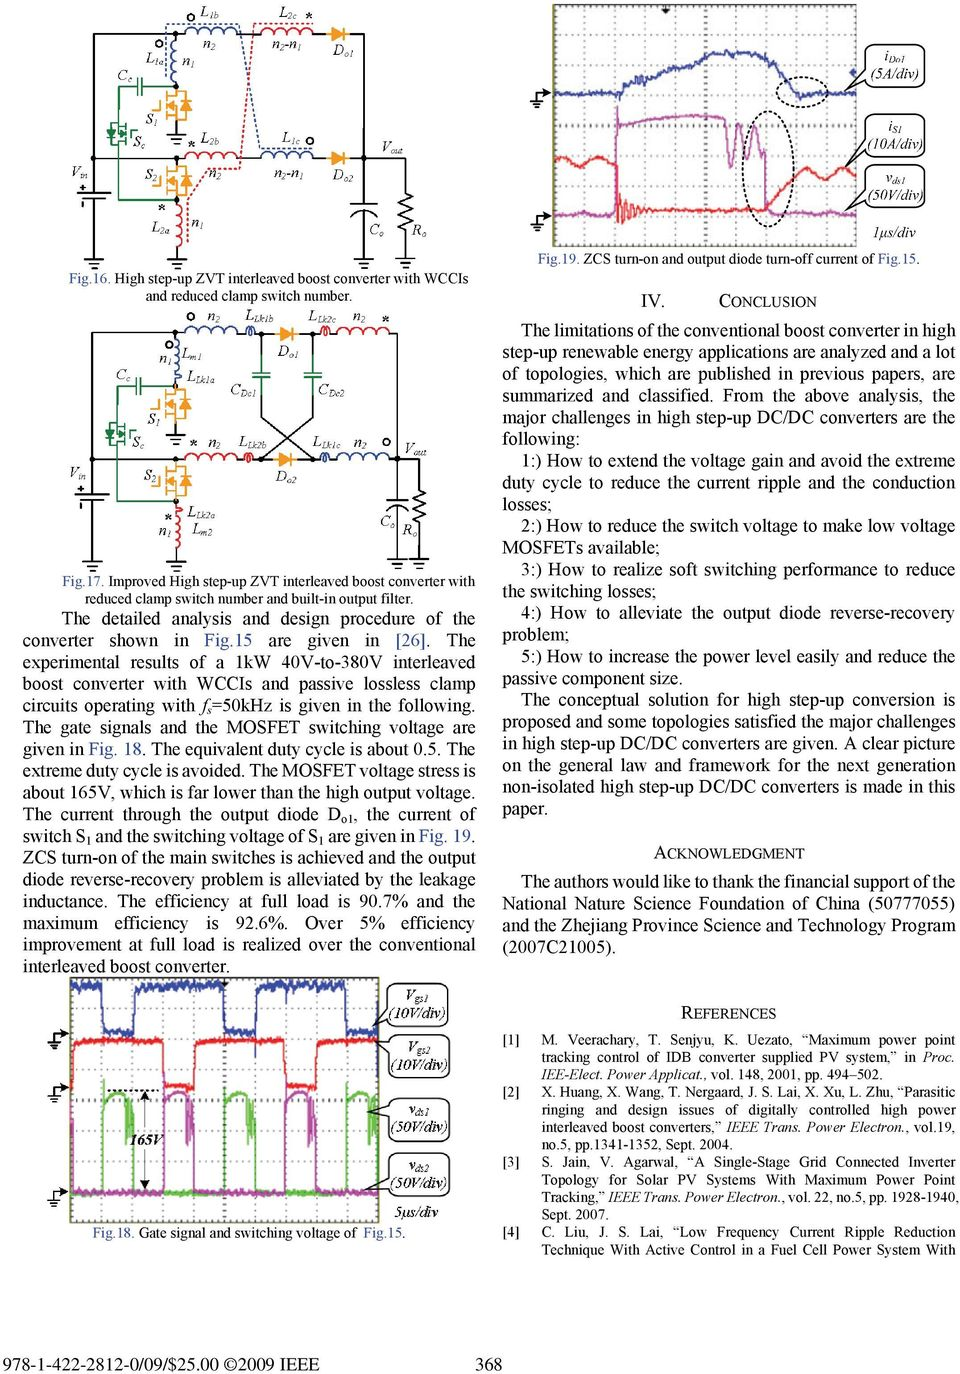 A Review Of Non Isolated High Step Up Dc Converters In Renewable Converter Interleaved Operation For Frequency Ripple Reduction 15 Are Given 26 The Experimental Results 1kw 40v